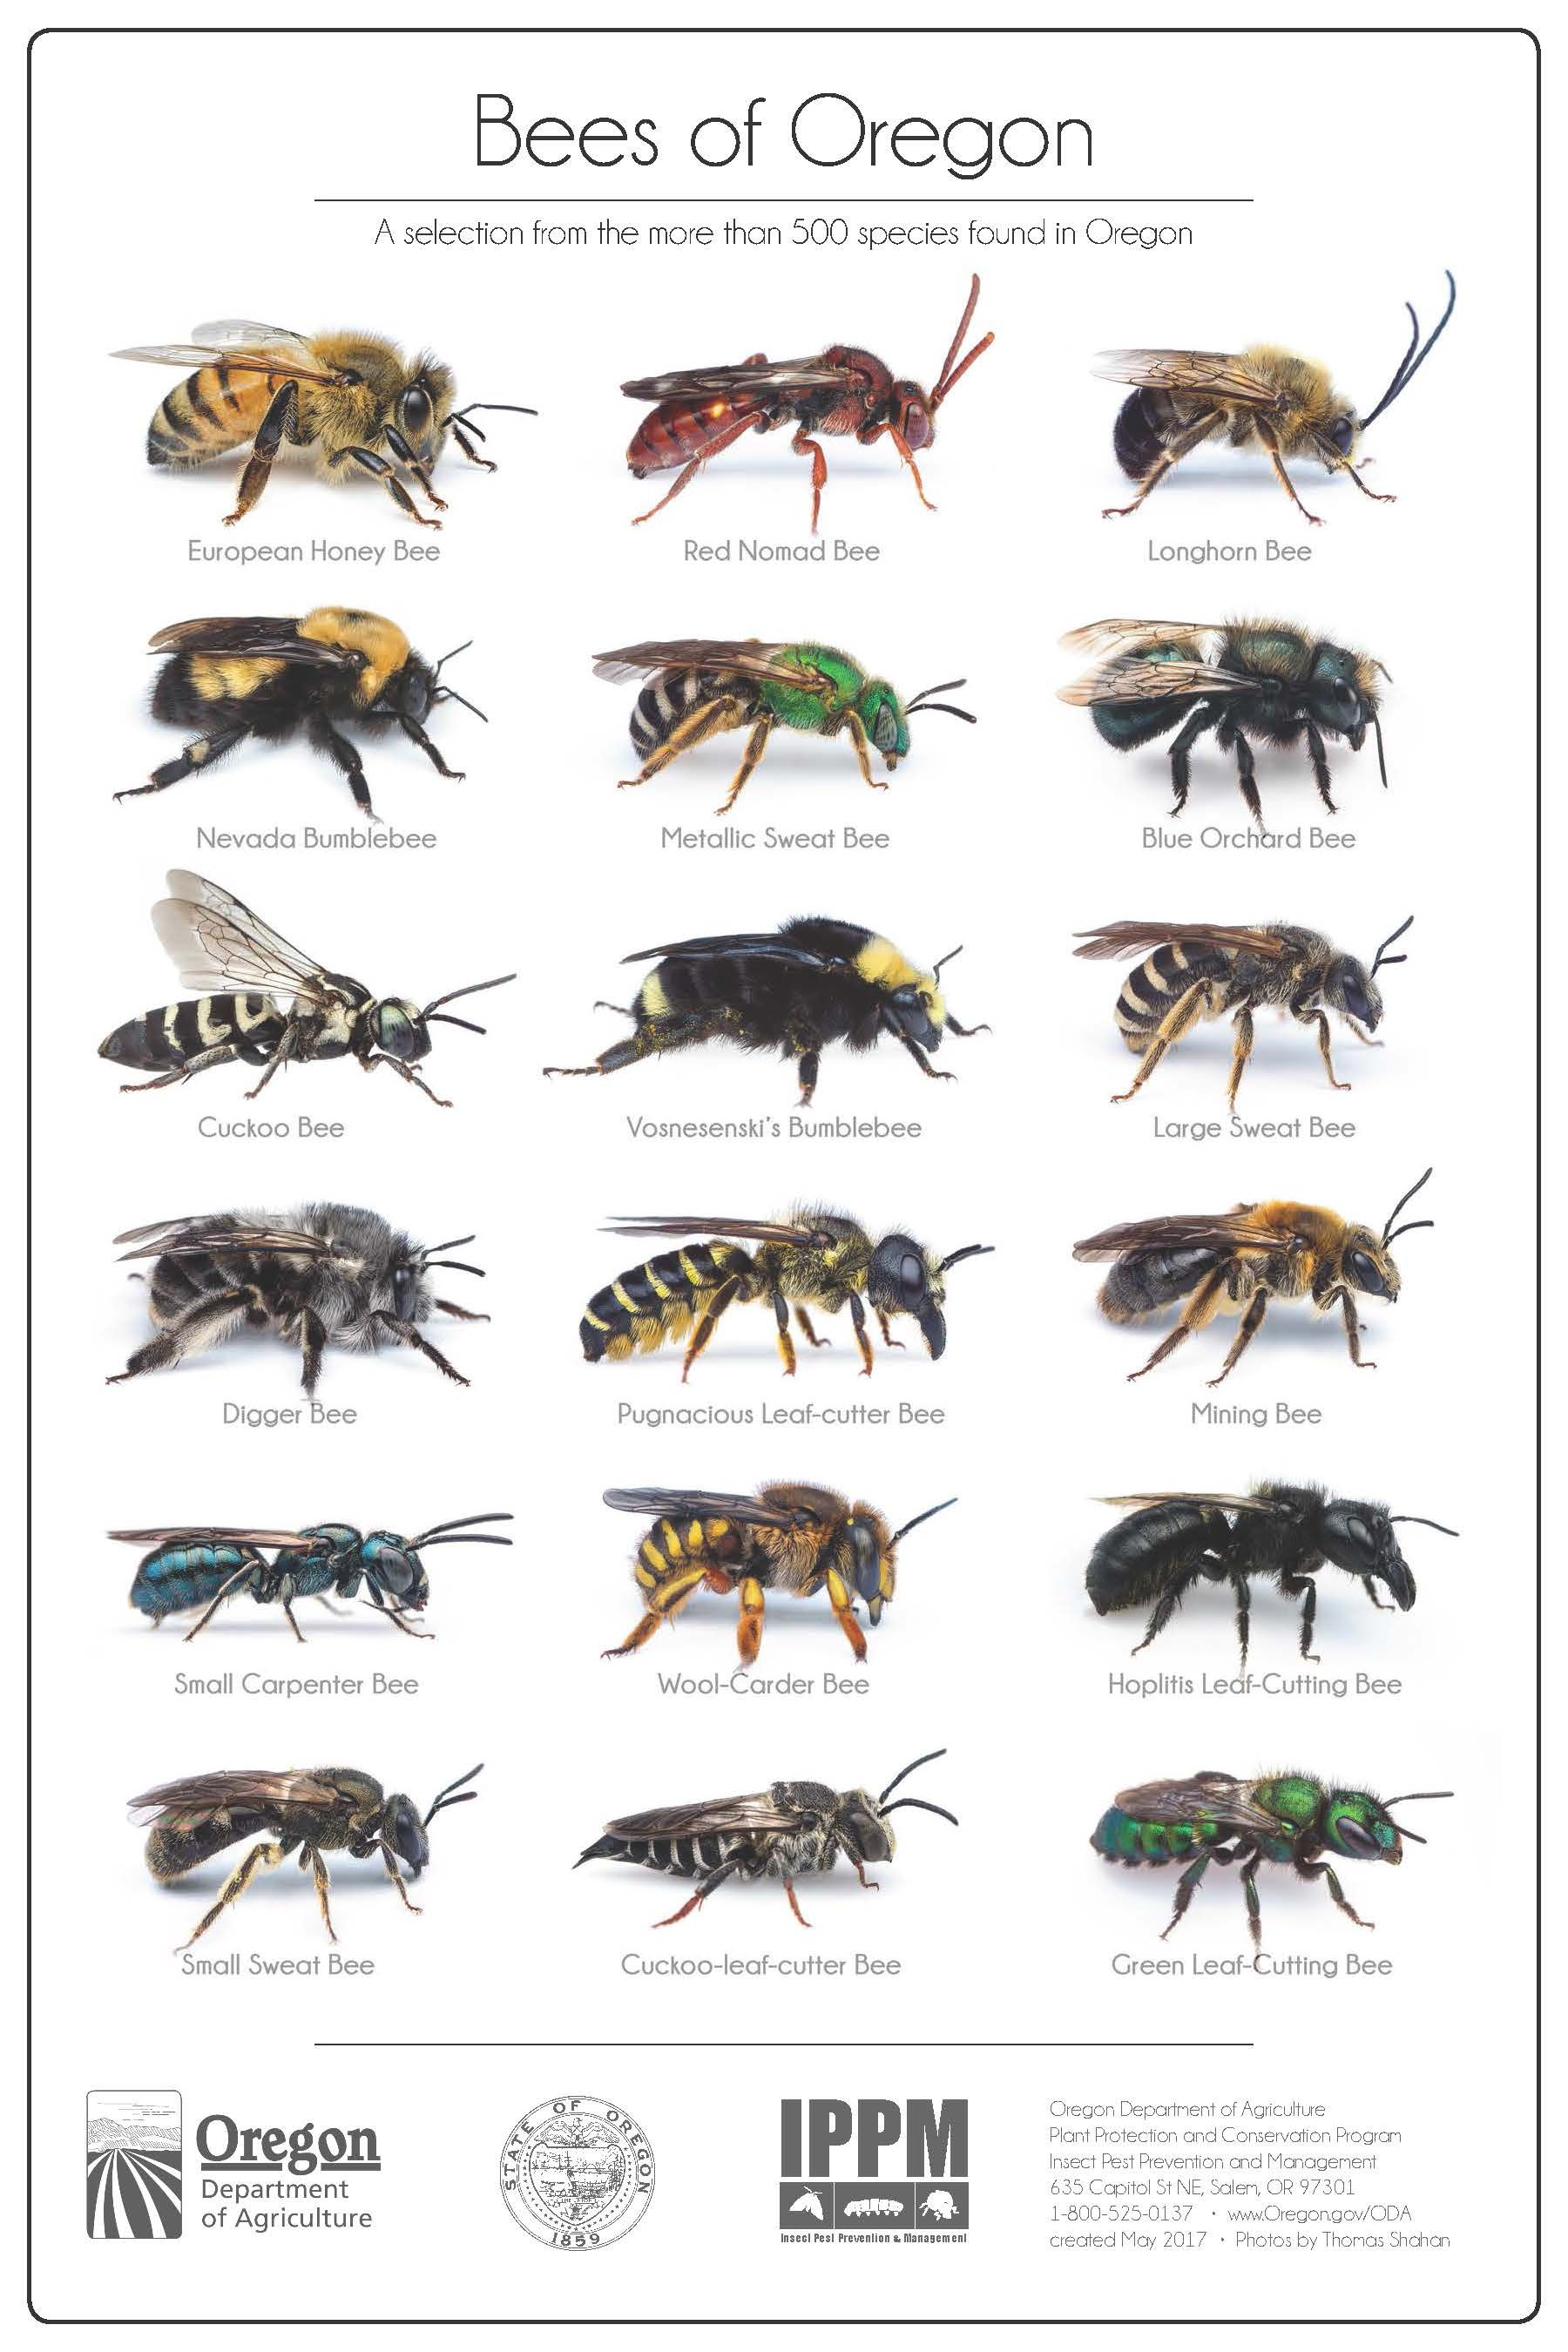 Bees Of Oregon A Selection From The More Than 500 Species Found In Oregon By The Oregon Department Of Agricultur Bee Remedies For Bee Stings Pest Prevention